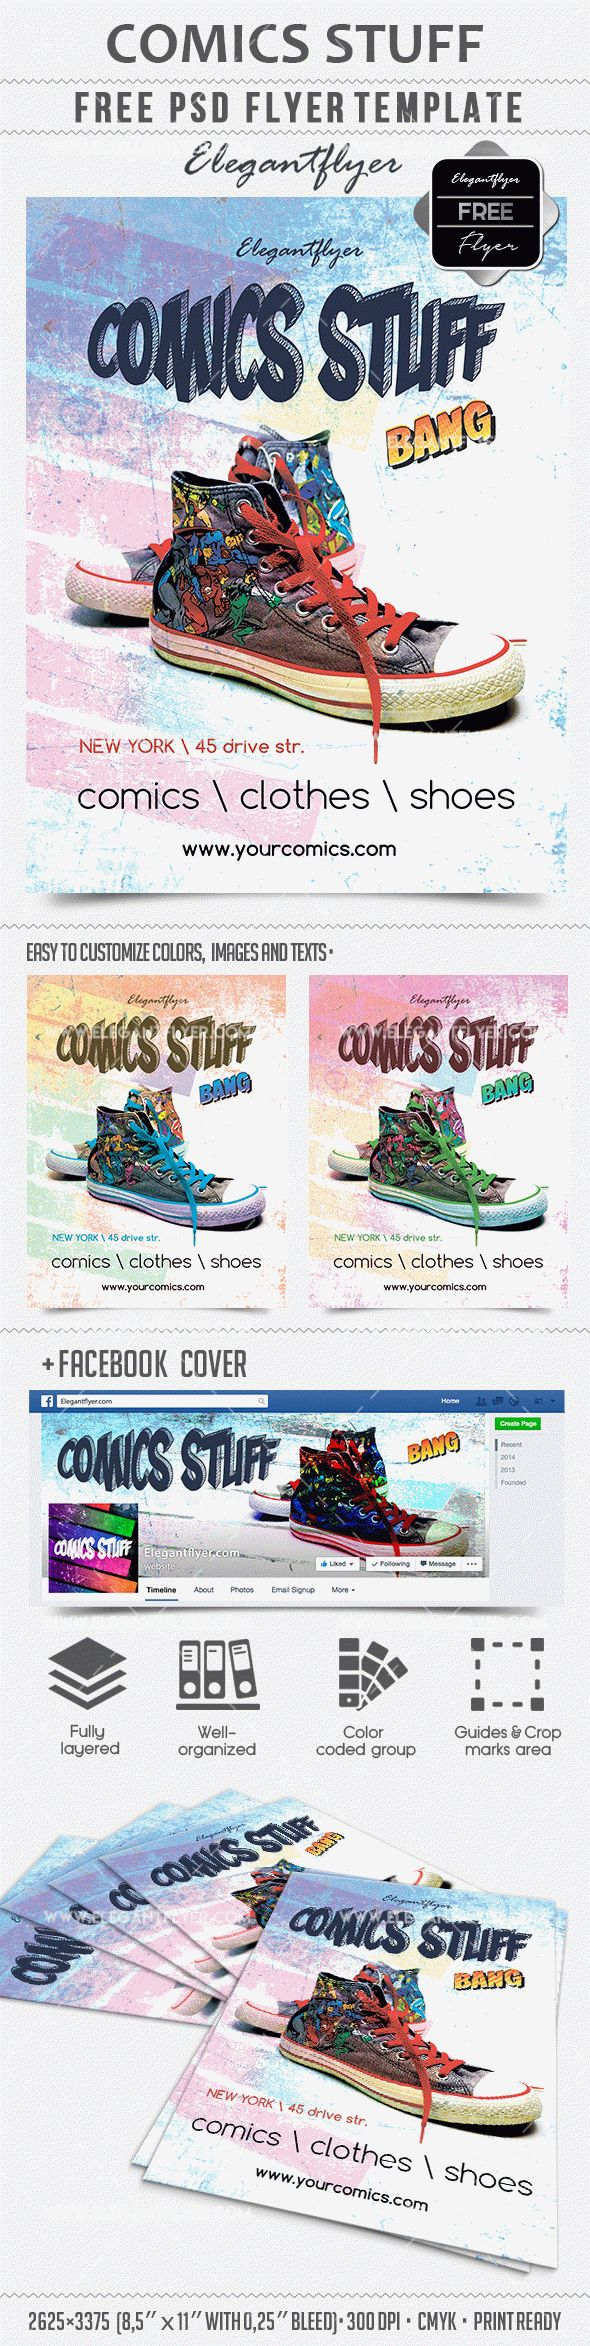 Comics Stuff – Free PSD Template + Facebook cover